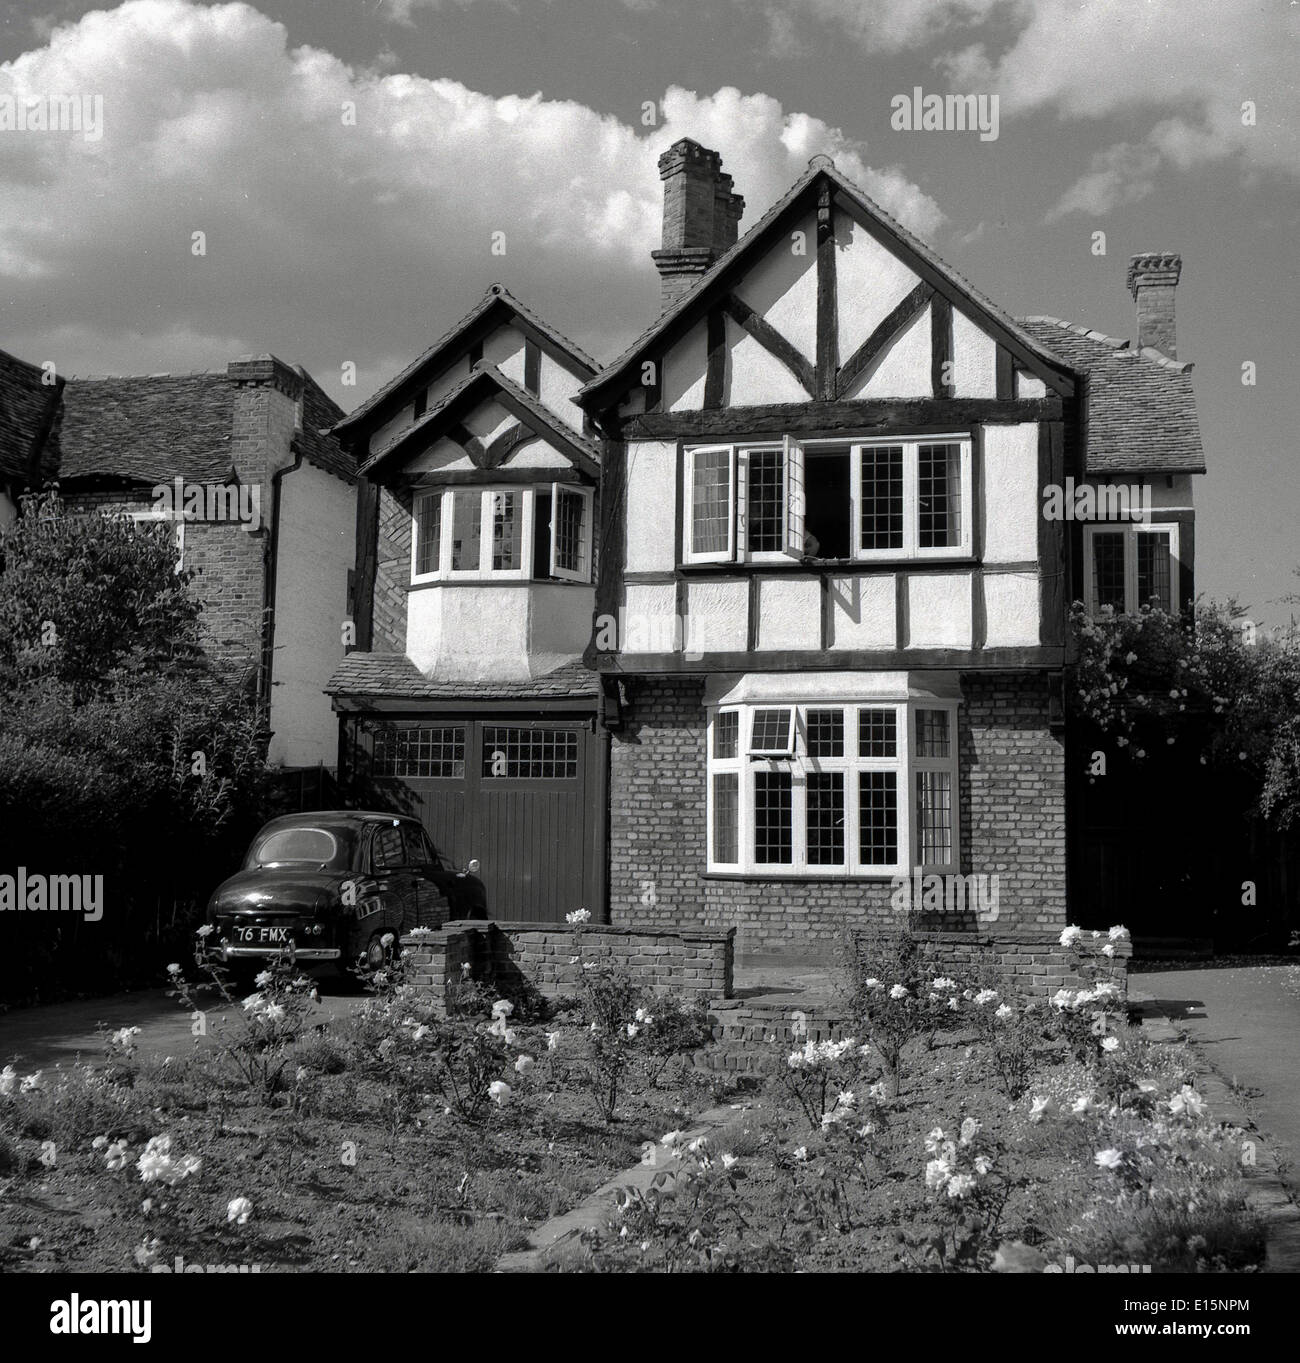 1950S House Interesting 1950Shistorical Picture Of Mock Tudor English Suburban House Review